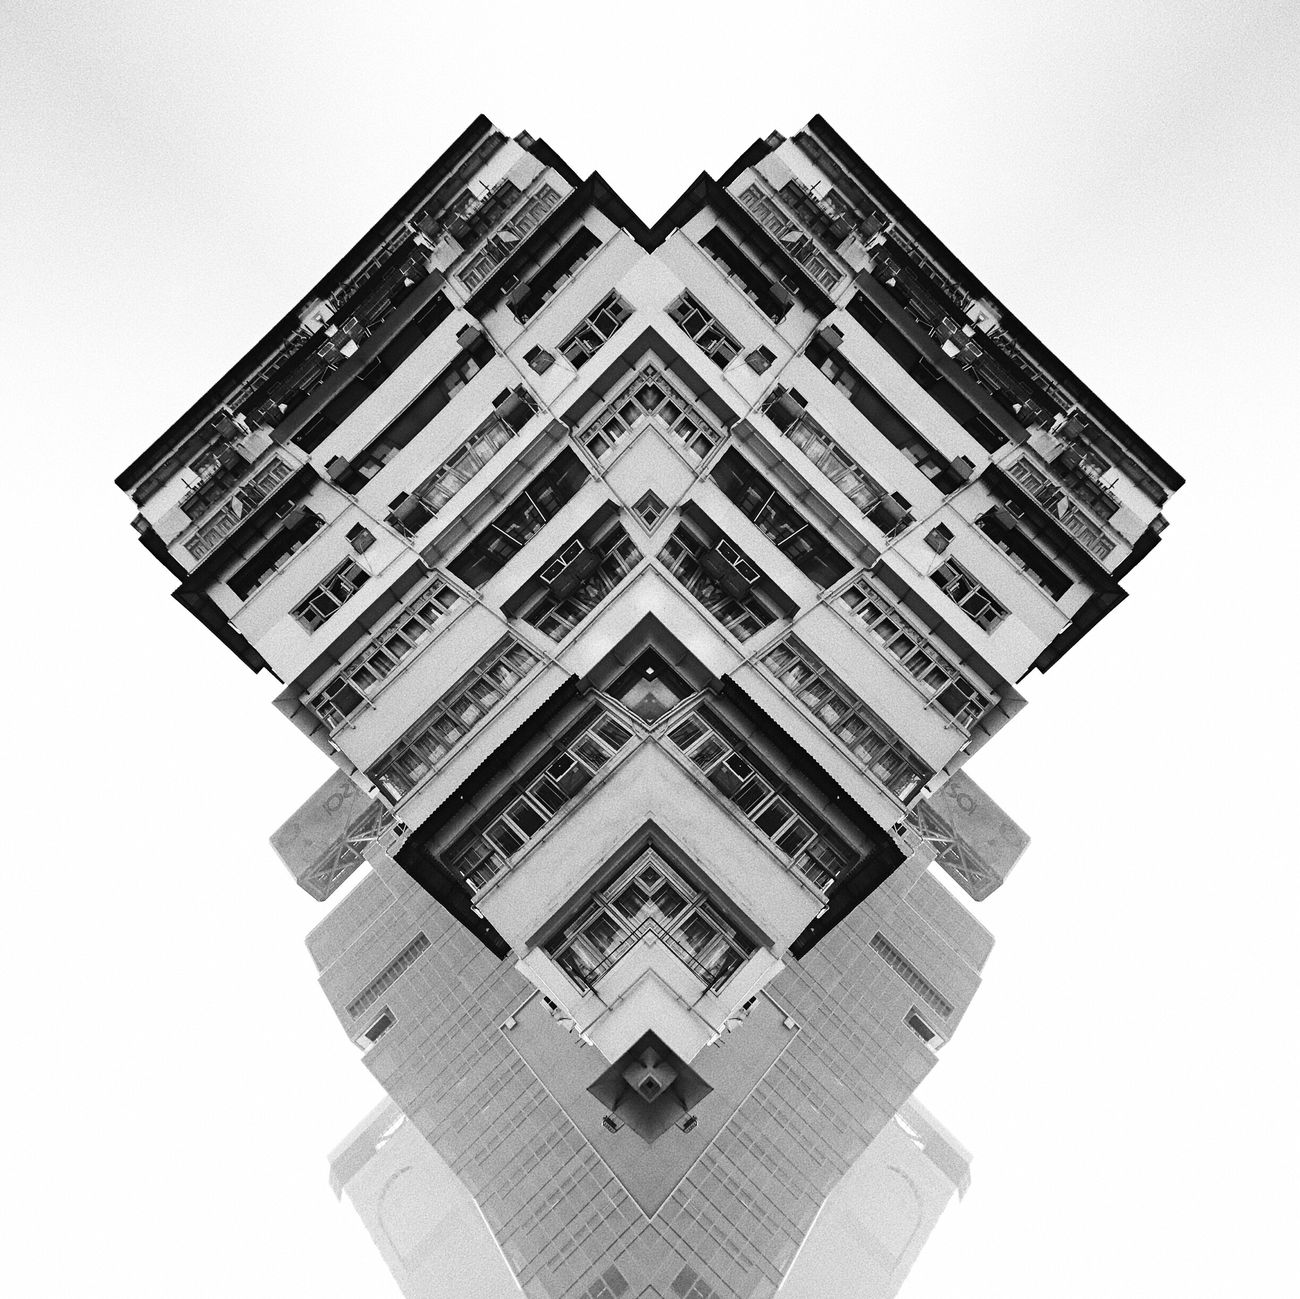 Level 3 Rearchitseries Abstractarchitecture Doubleexposure Double Exposure Symmetry Symmetryporn Symmetrical Art Artistic Abstract Abstract Art Abstractart Blackandwhite Photography Blackandwhite Black & White Monochrome Monochromatic Black And White EyeEm Best Shots - Black + White